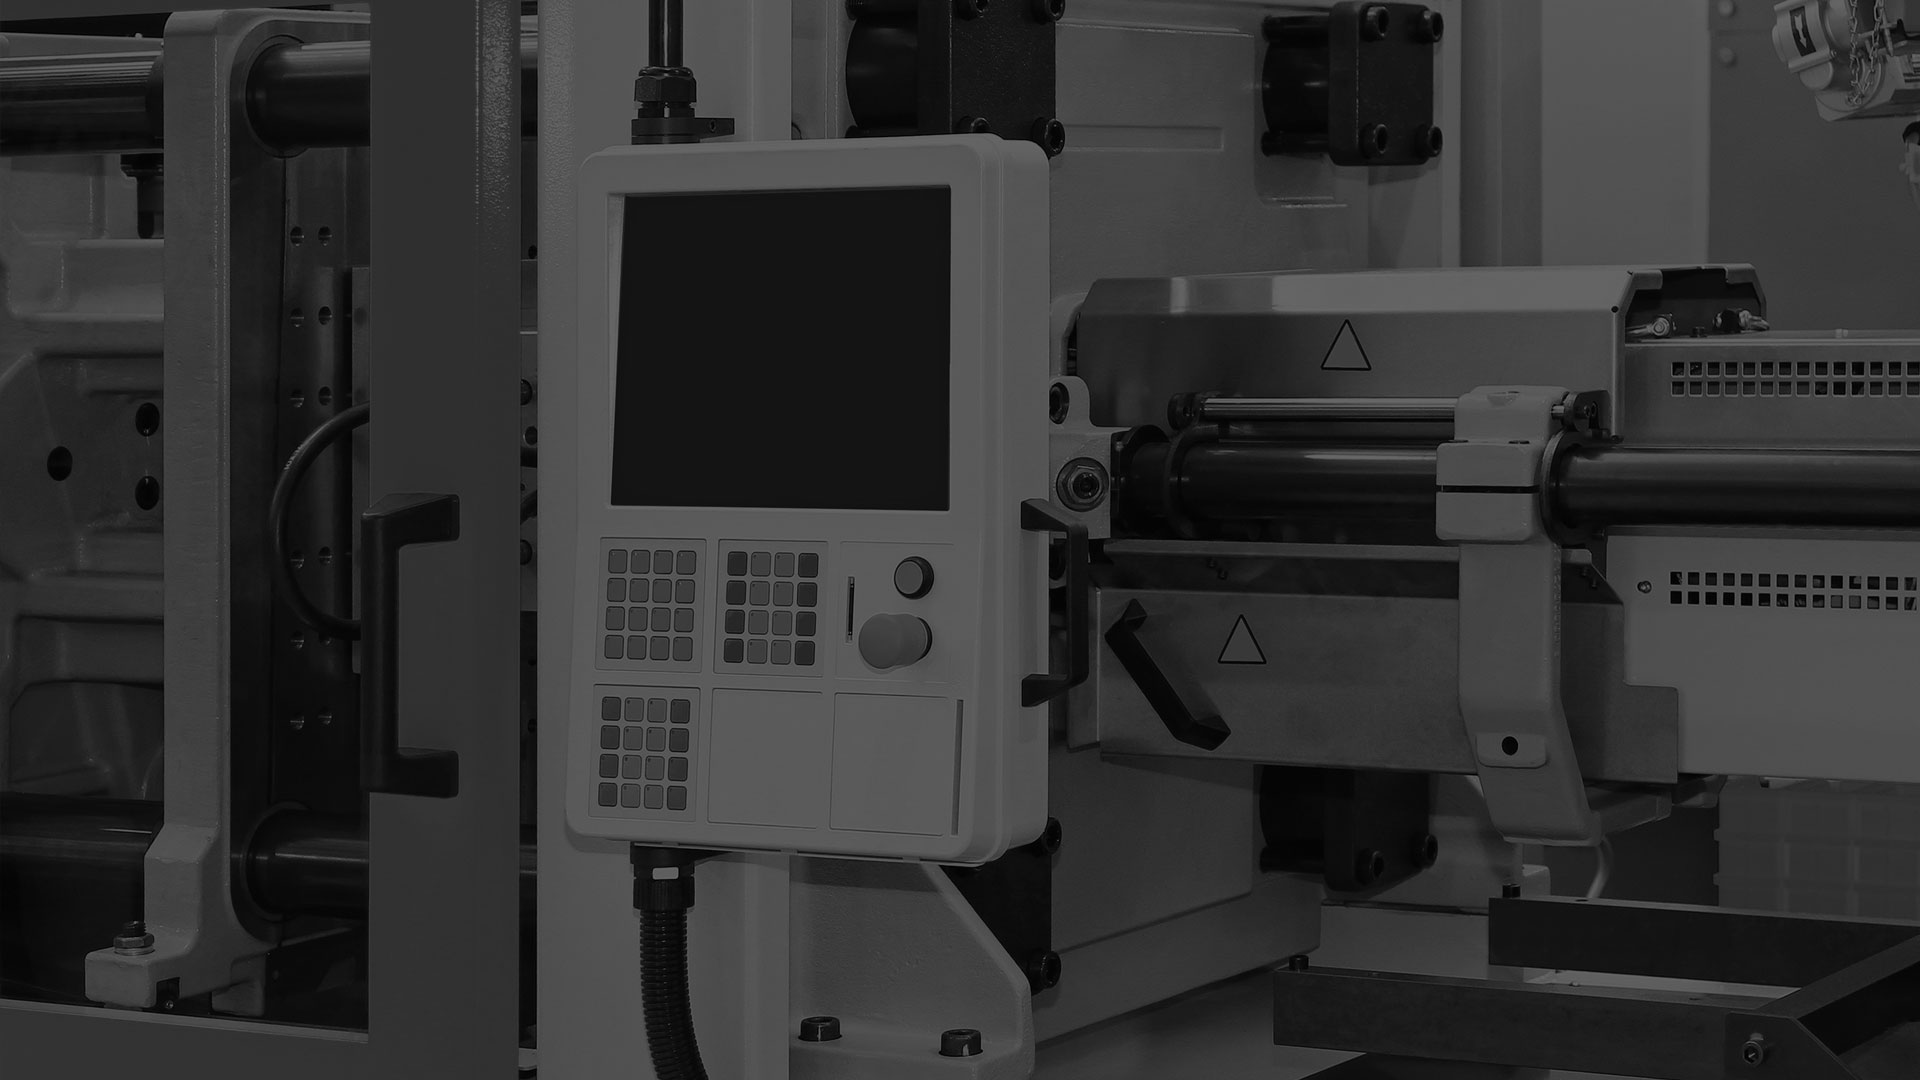 A darkened black and white image of an injection molding machine.